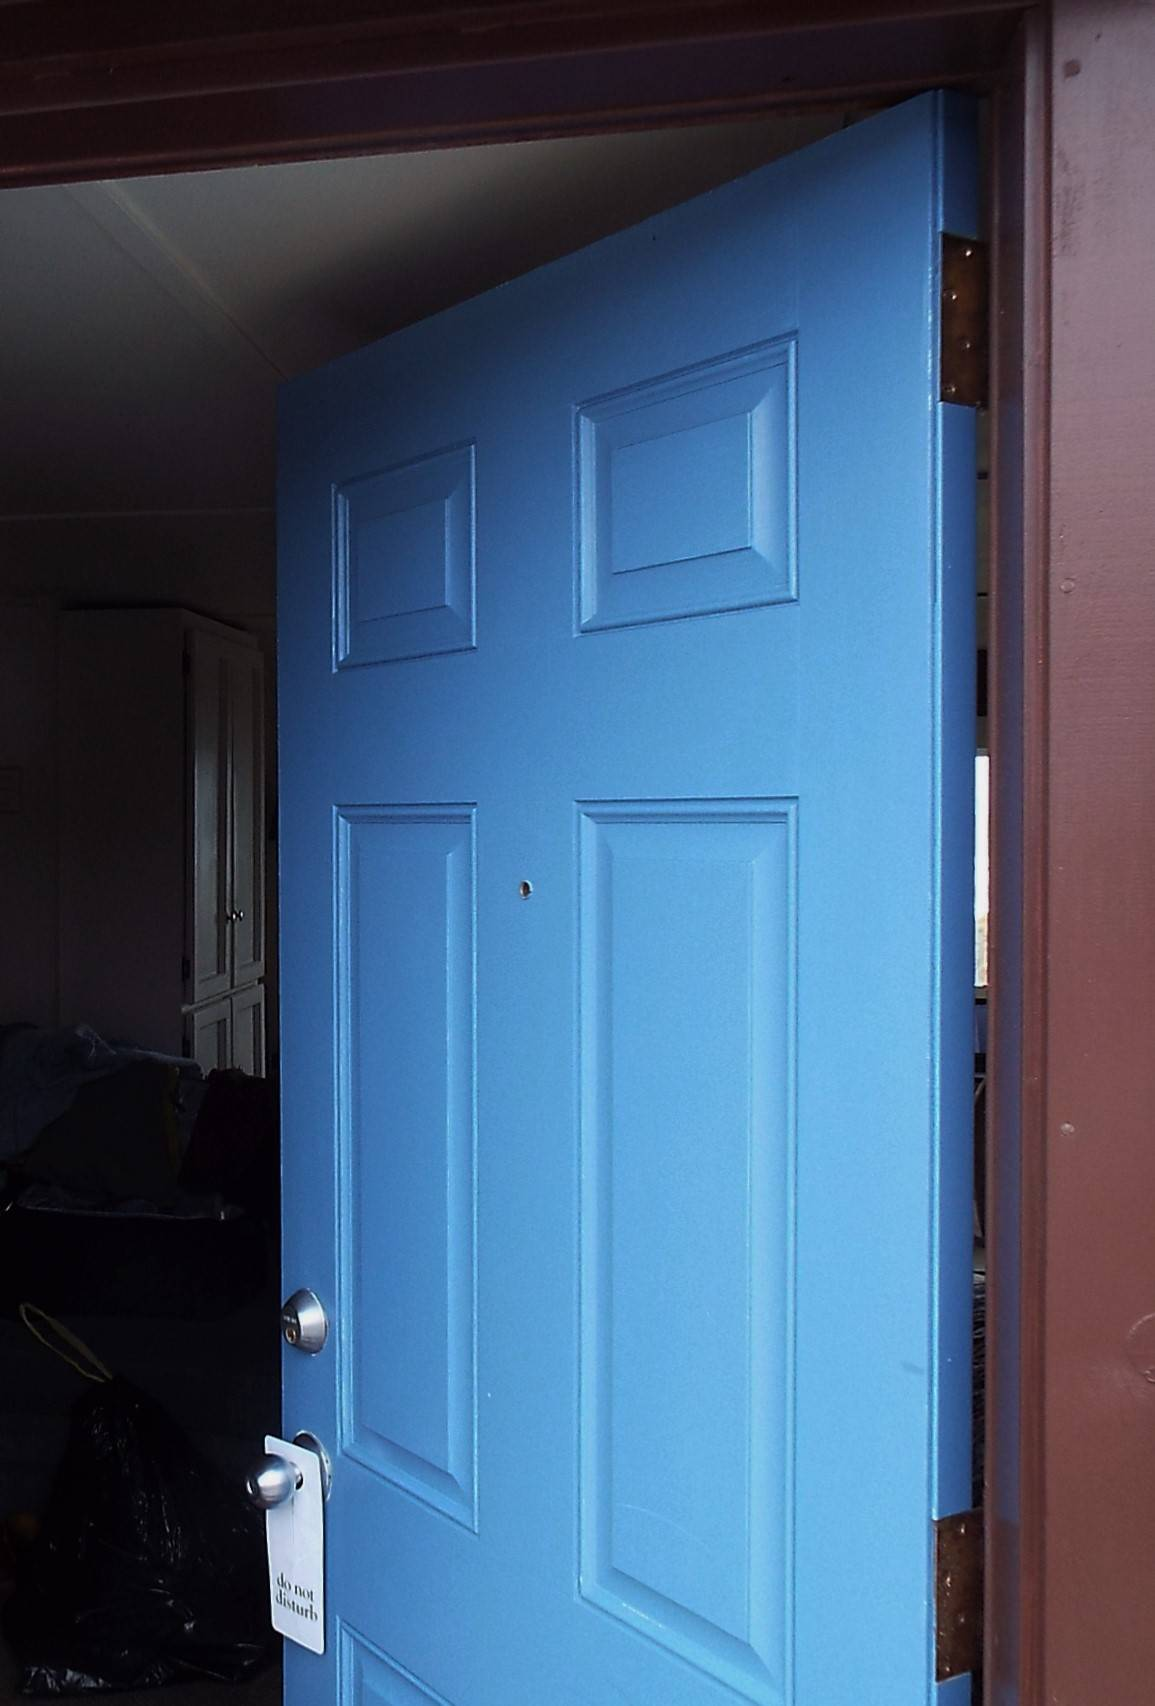 Motel Room Interiors: What Goes On Behind Closed Doors